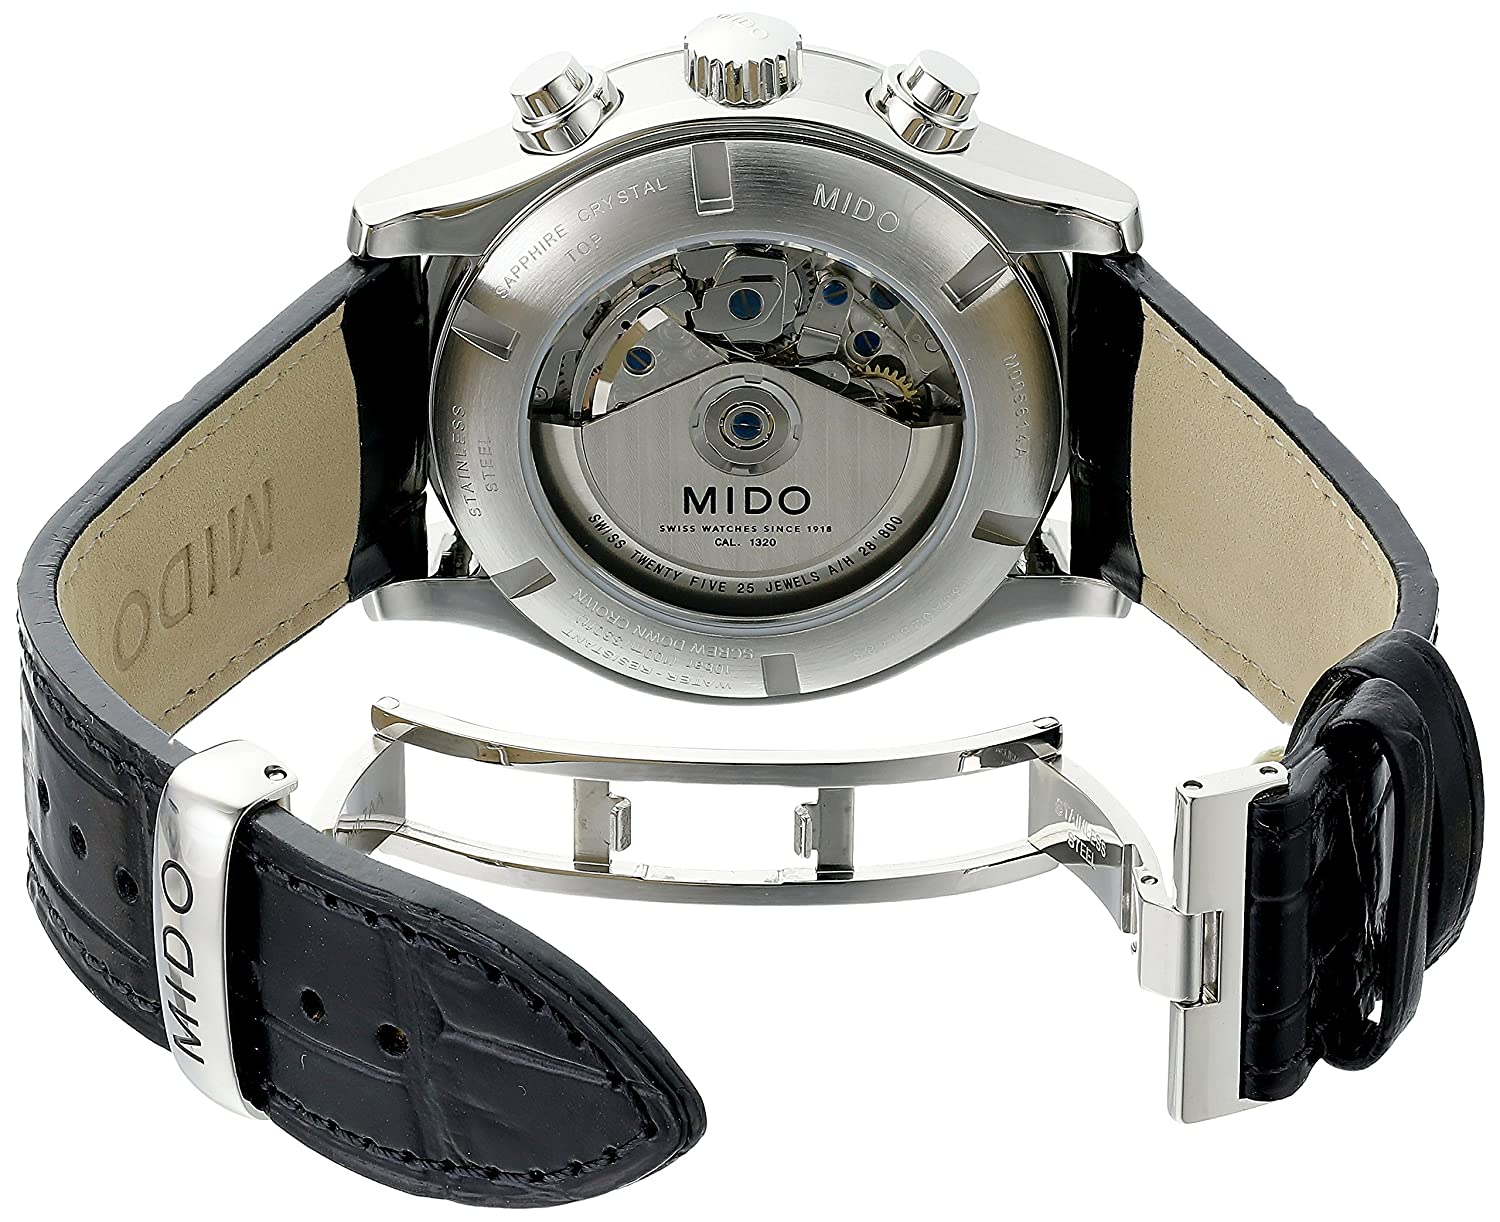 Amazon.com: Mido Mens MIDO-M0056141606100 Multifort Analog Display Swiss Automatic Black Watch: Watches